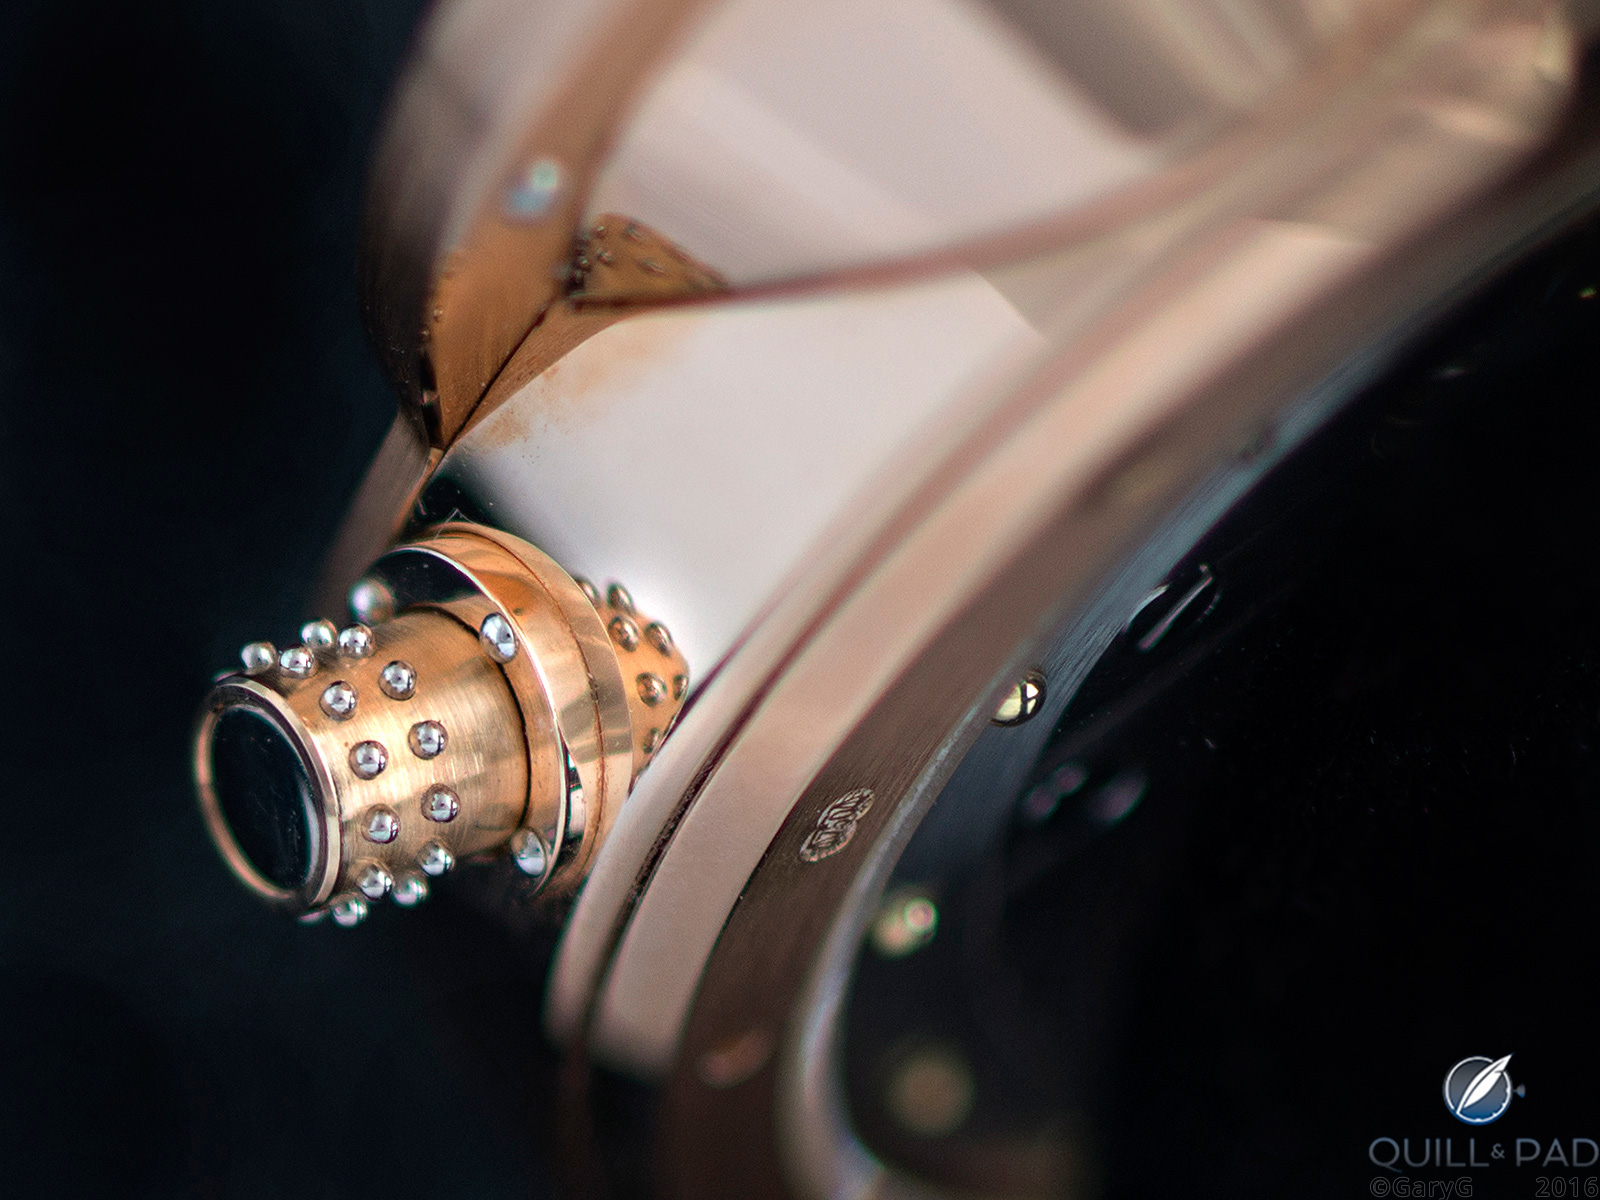 Riveted crown of the Vianney Halter Antiqua